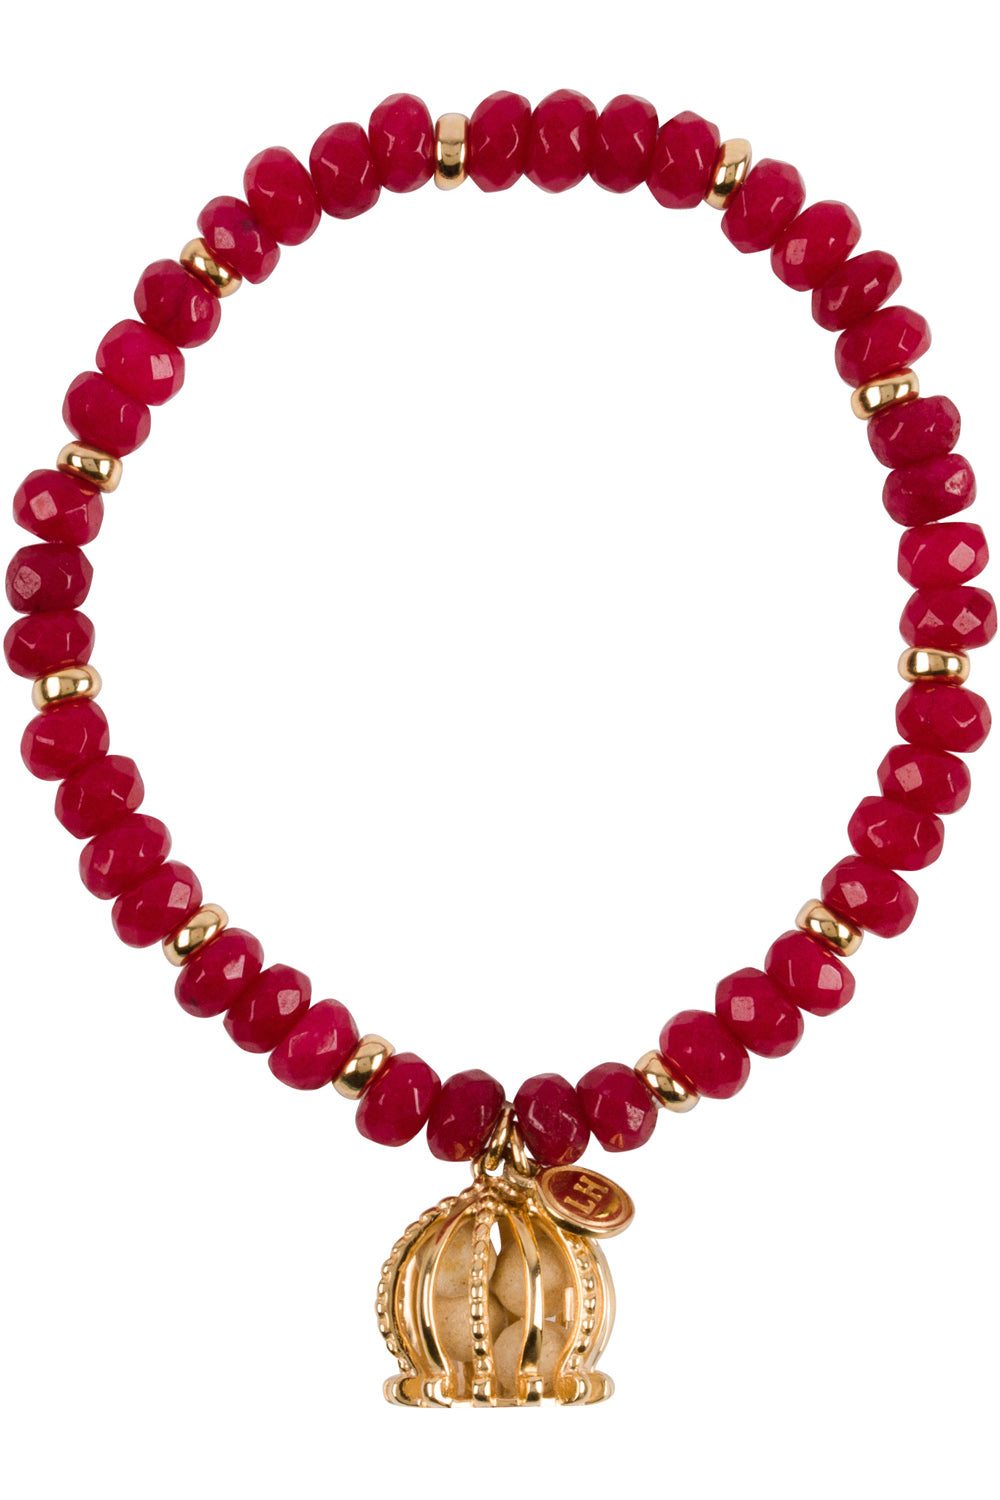 Red Imperial Jade Bracelet - Gold